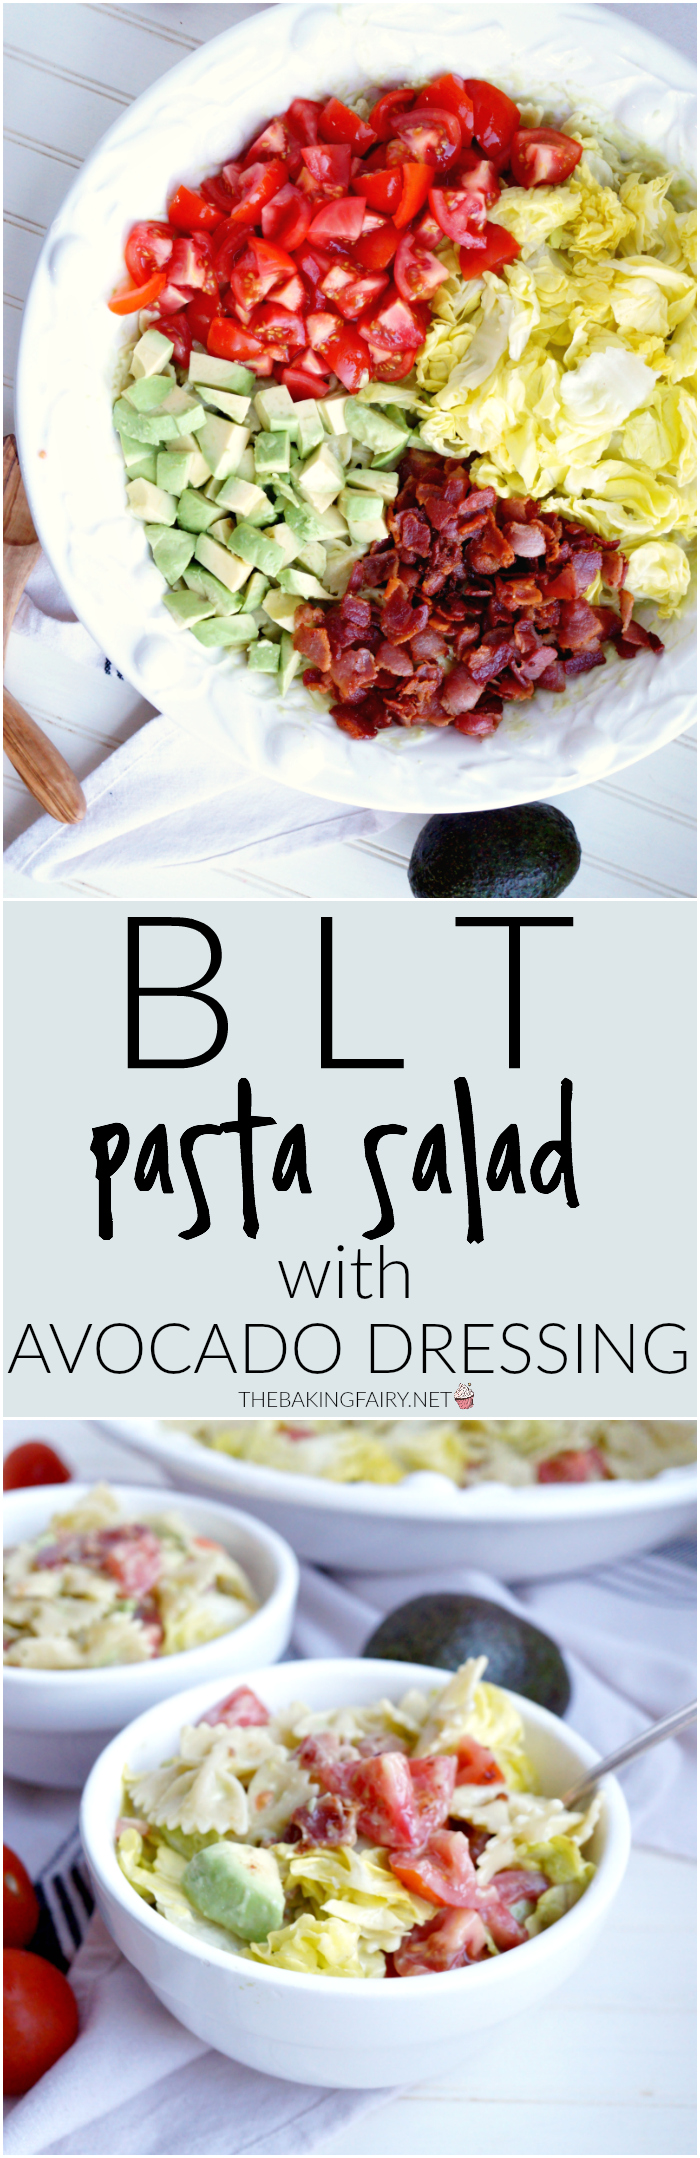 BLT pasta salad with avocado dressing | The Baking Fairy